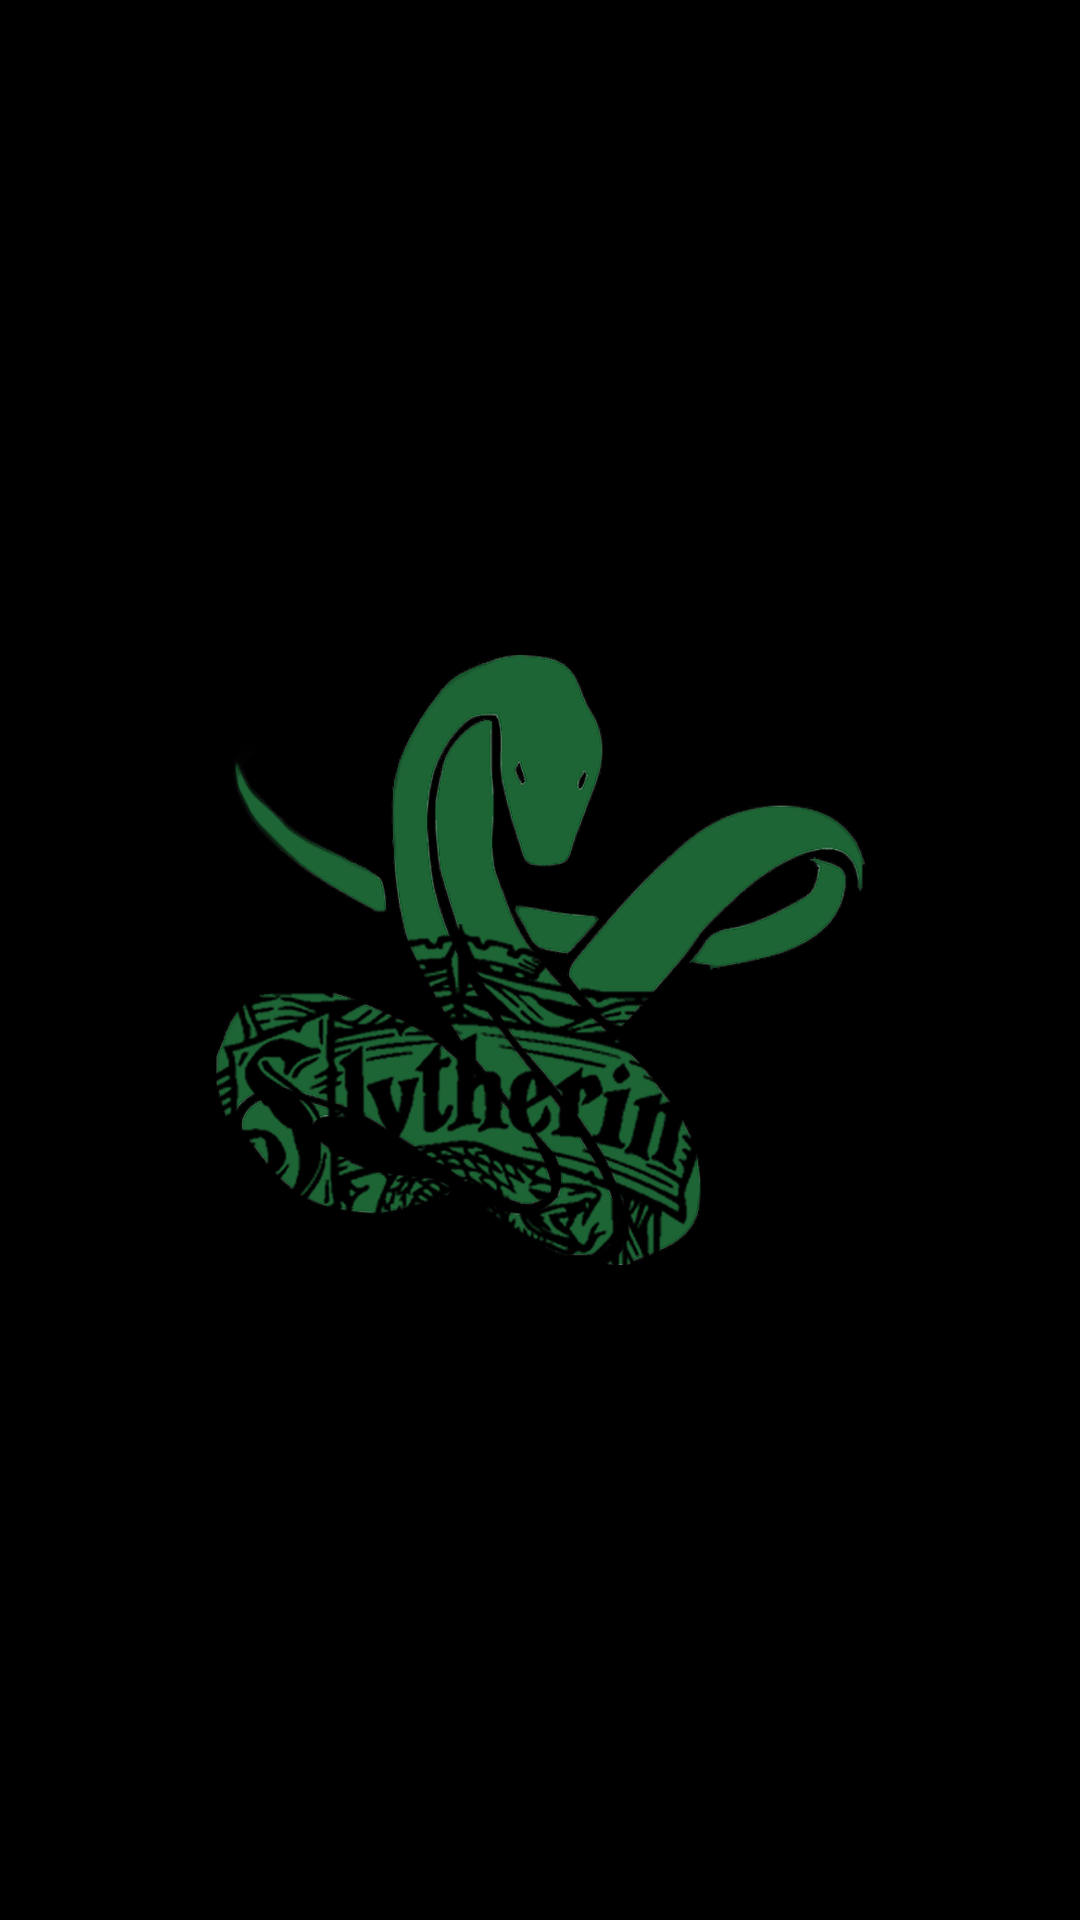 1080x1920 Slytherin Iphone 7 Wallpaper - 2018 Wallpapers HD | Wallpaper ...